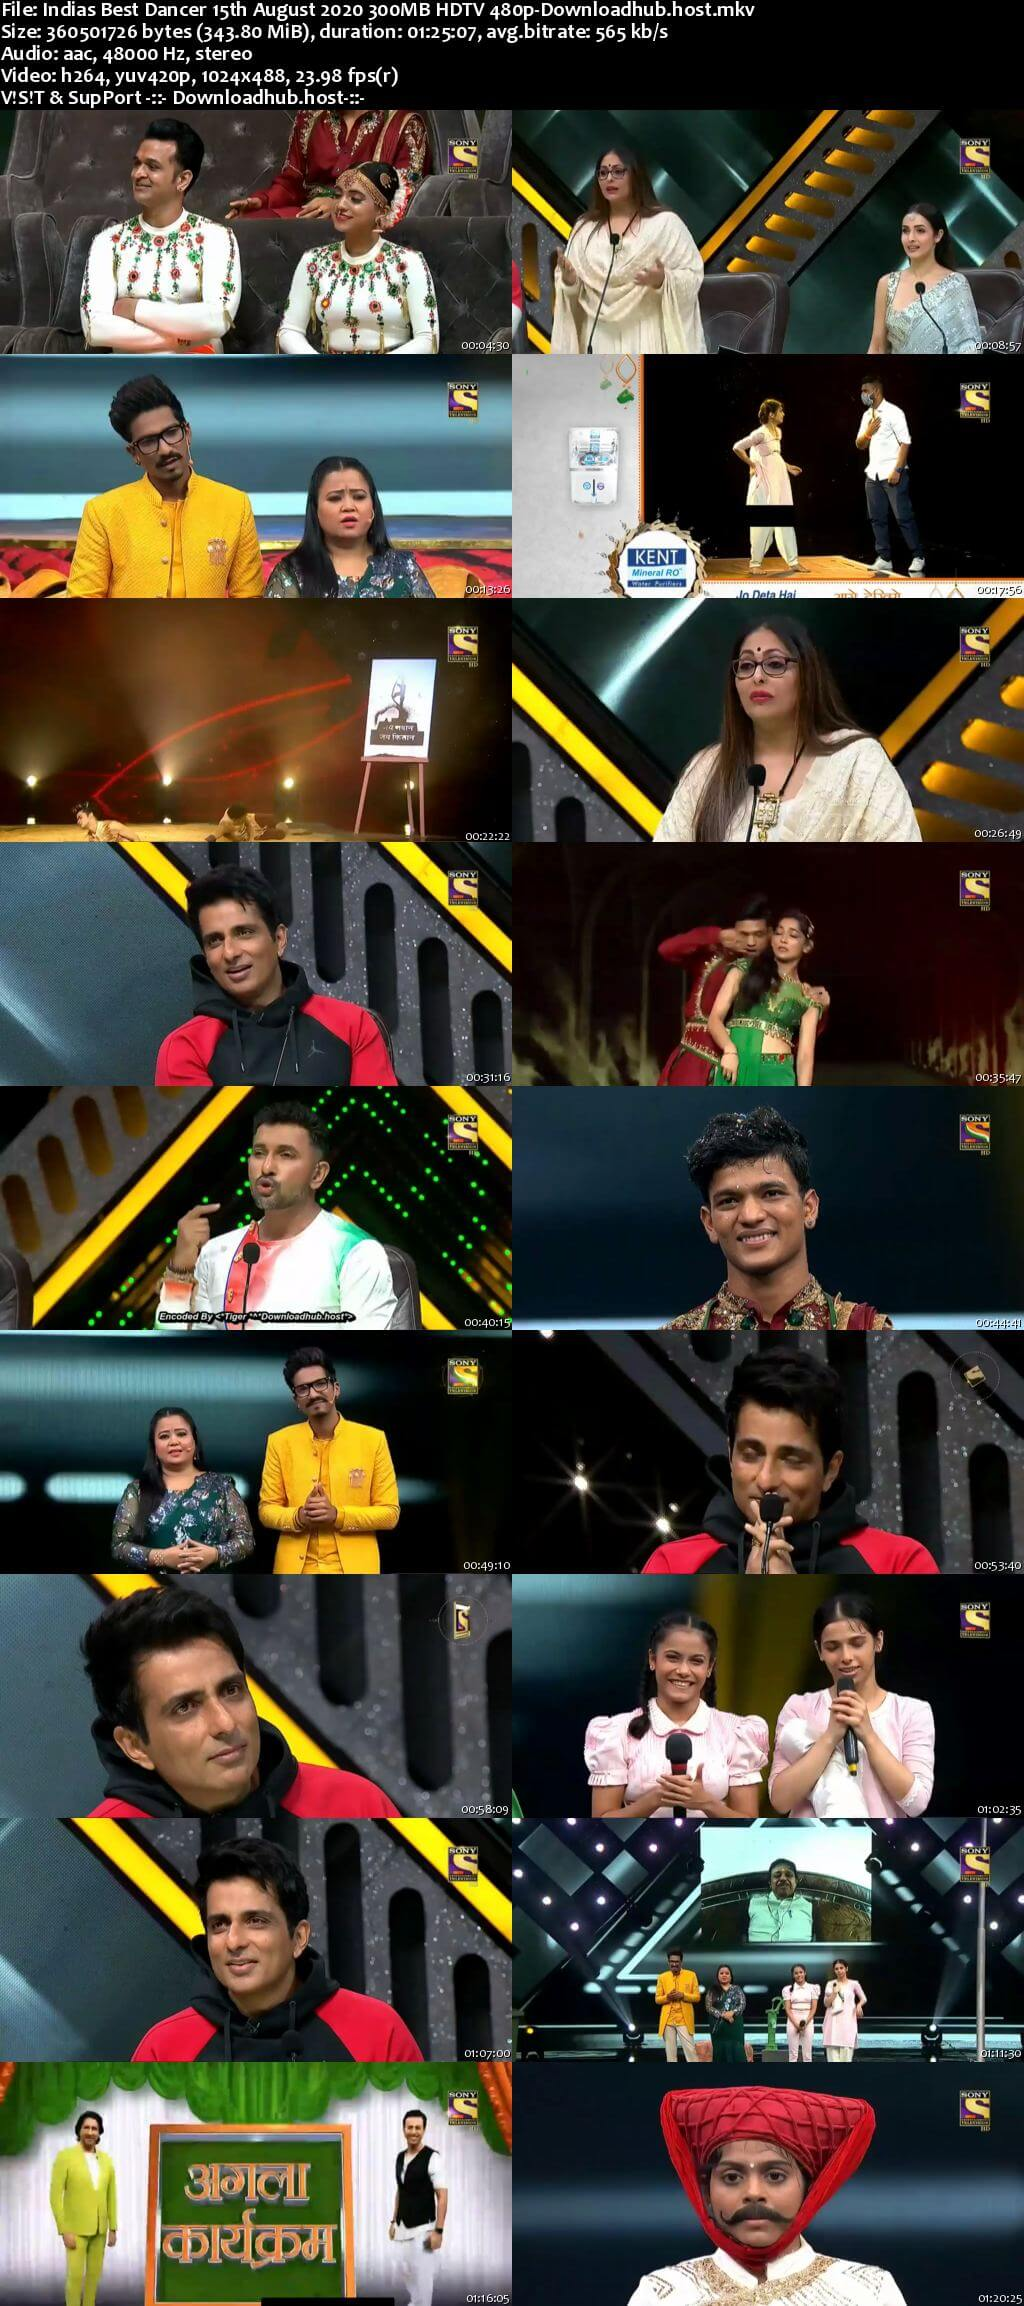 Indias Best Dancer 15 August 2020 Episode 19 HDTV 480p